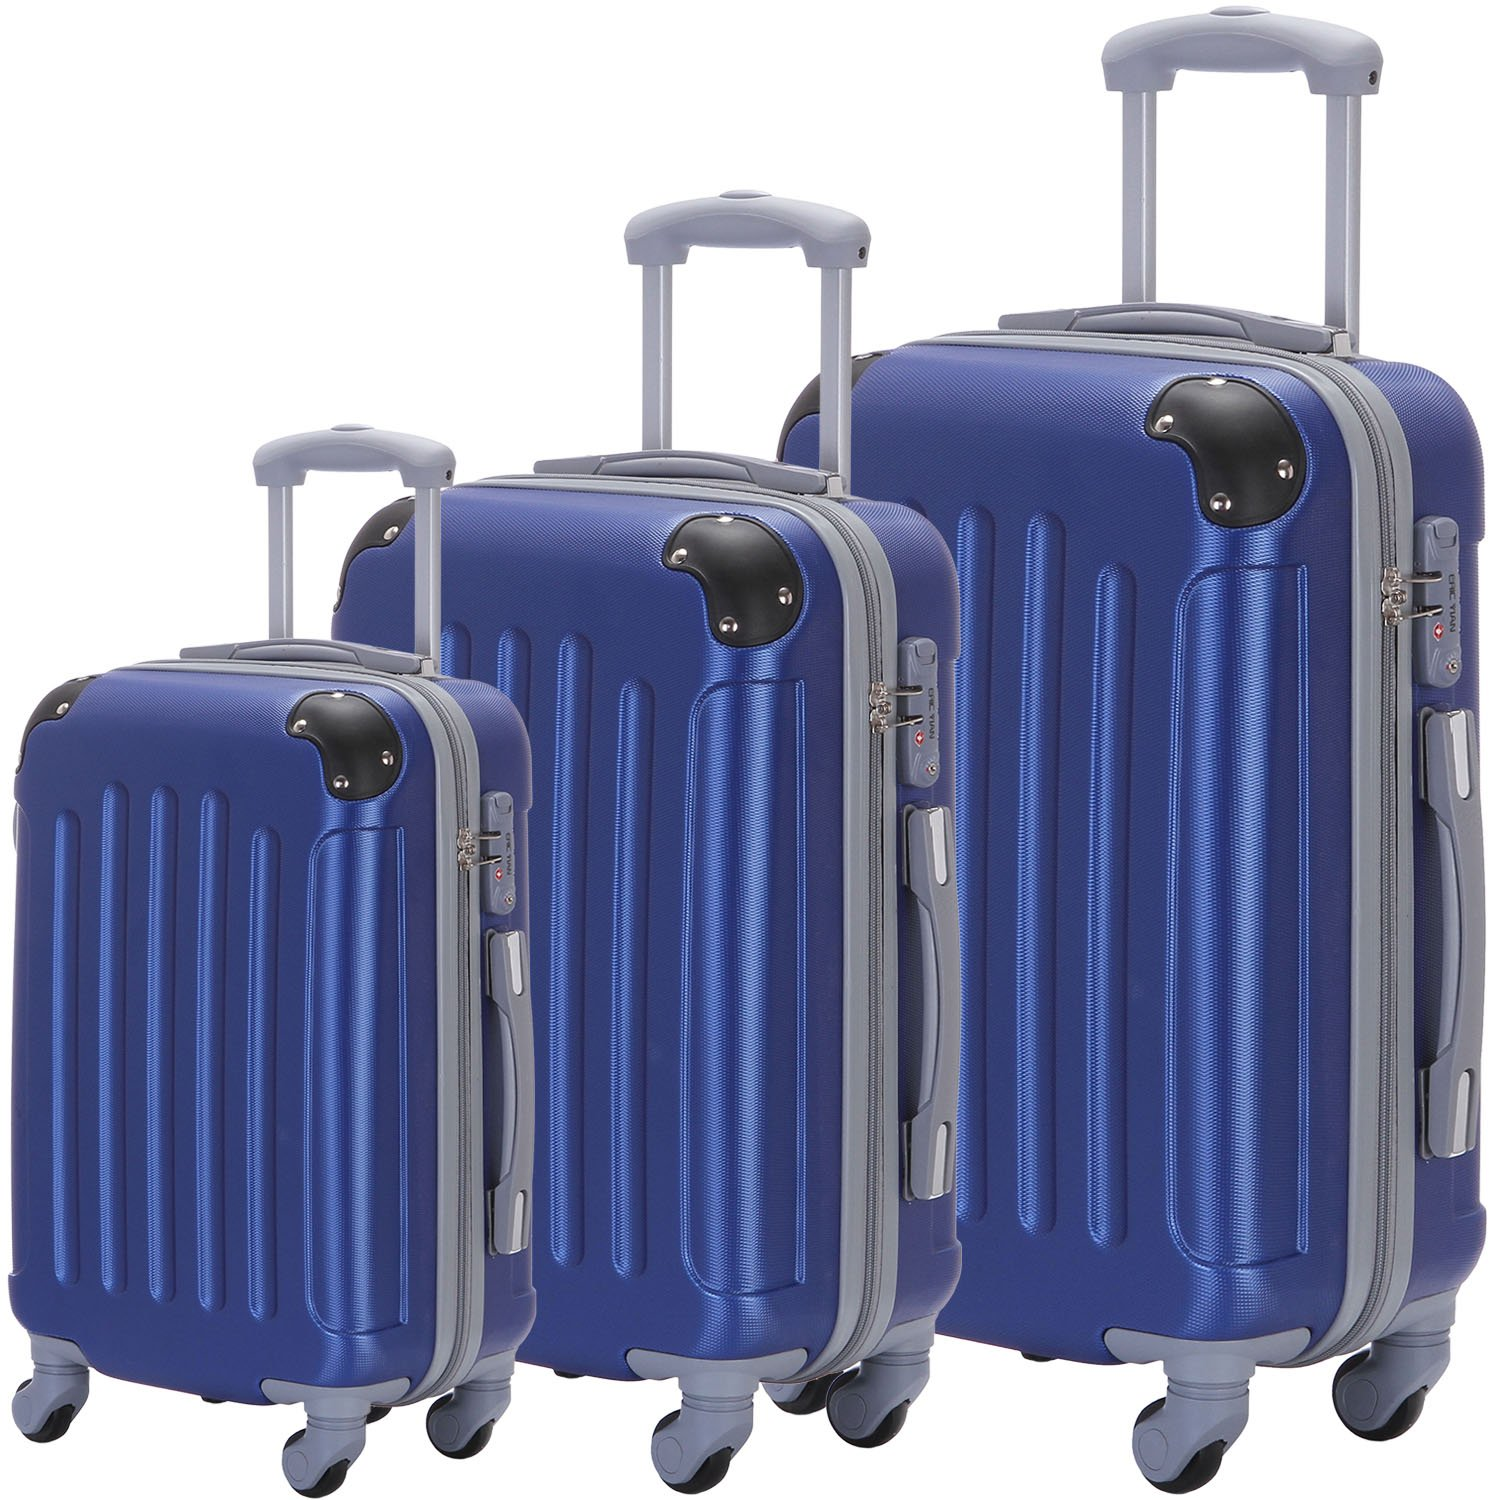 Suitcase 3-Piece ABS Luggage Set Trolley Spinner Hard-shell Durable, Sturdy Lightweight Suitcases by ERIC YIAN